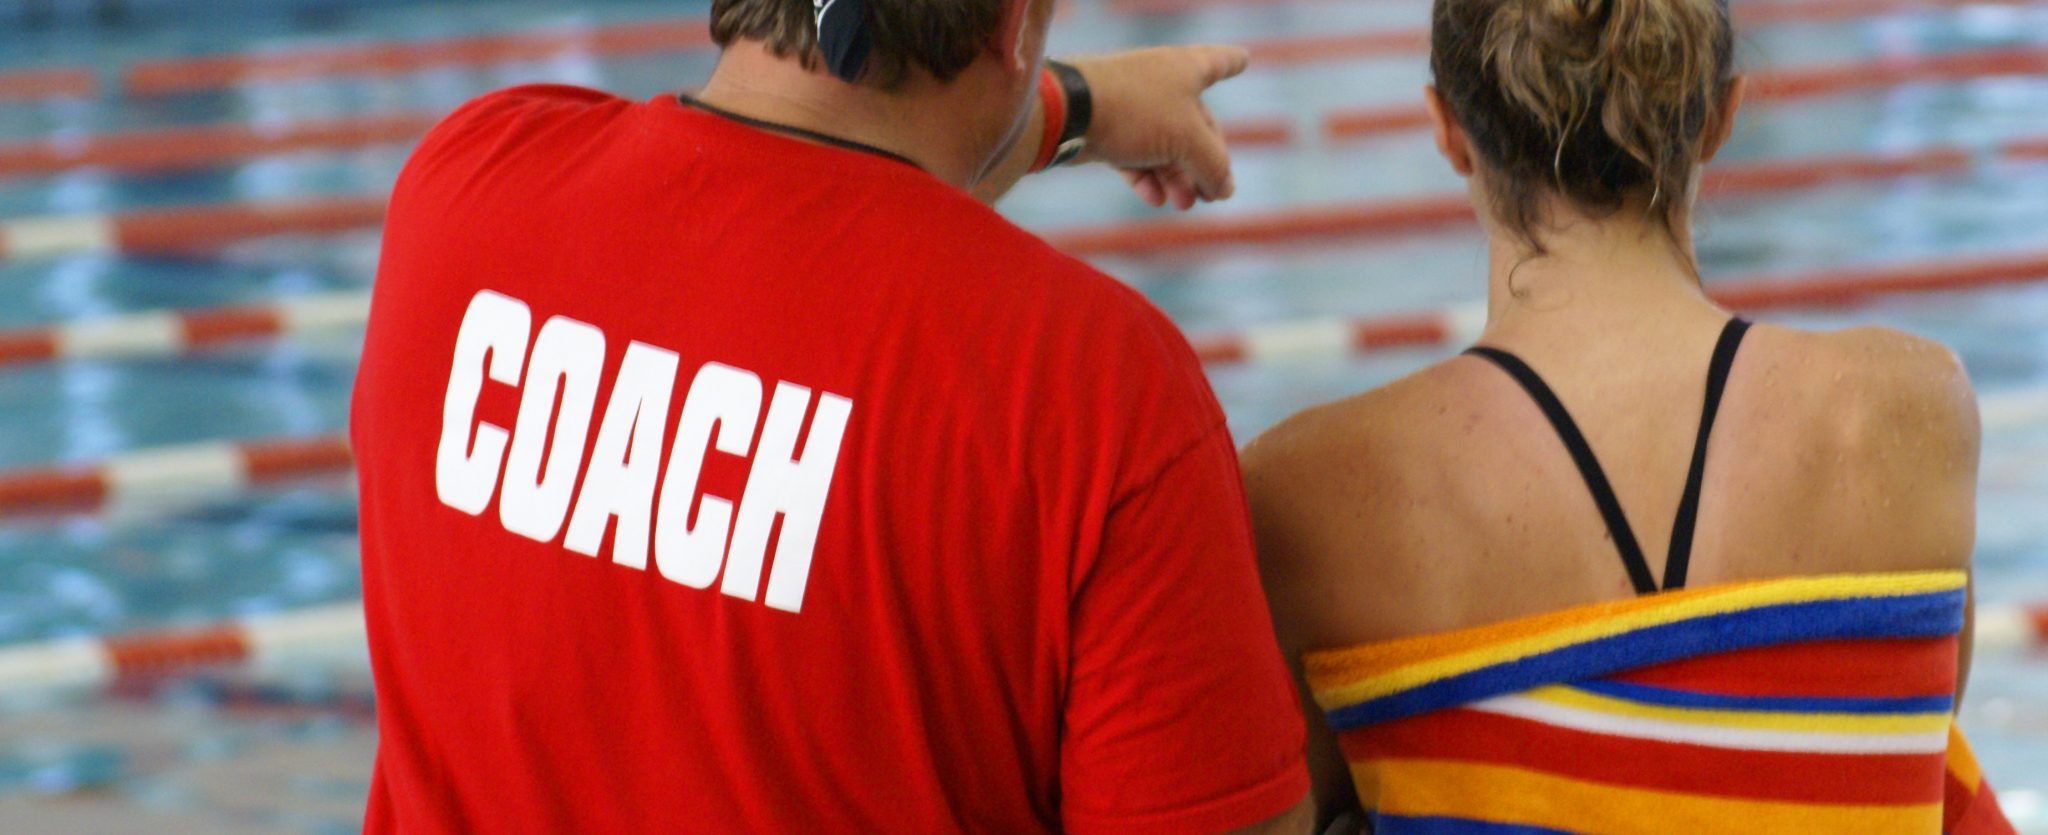 A coach giving instruction to a young female swimmer